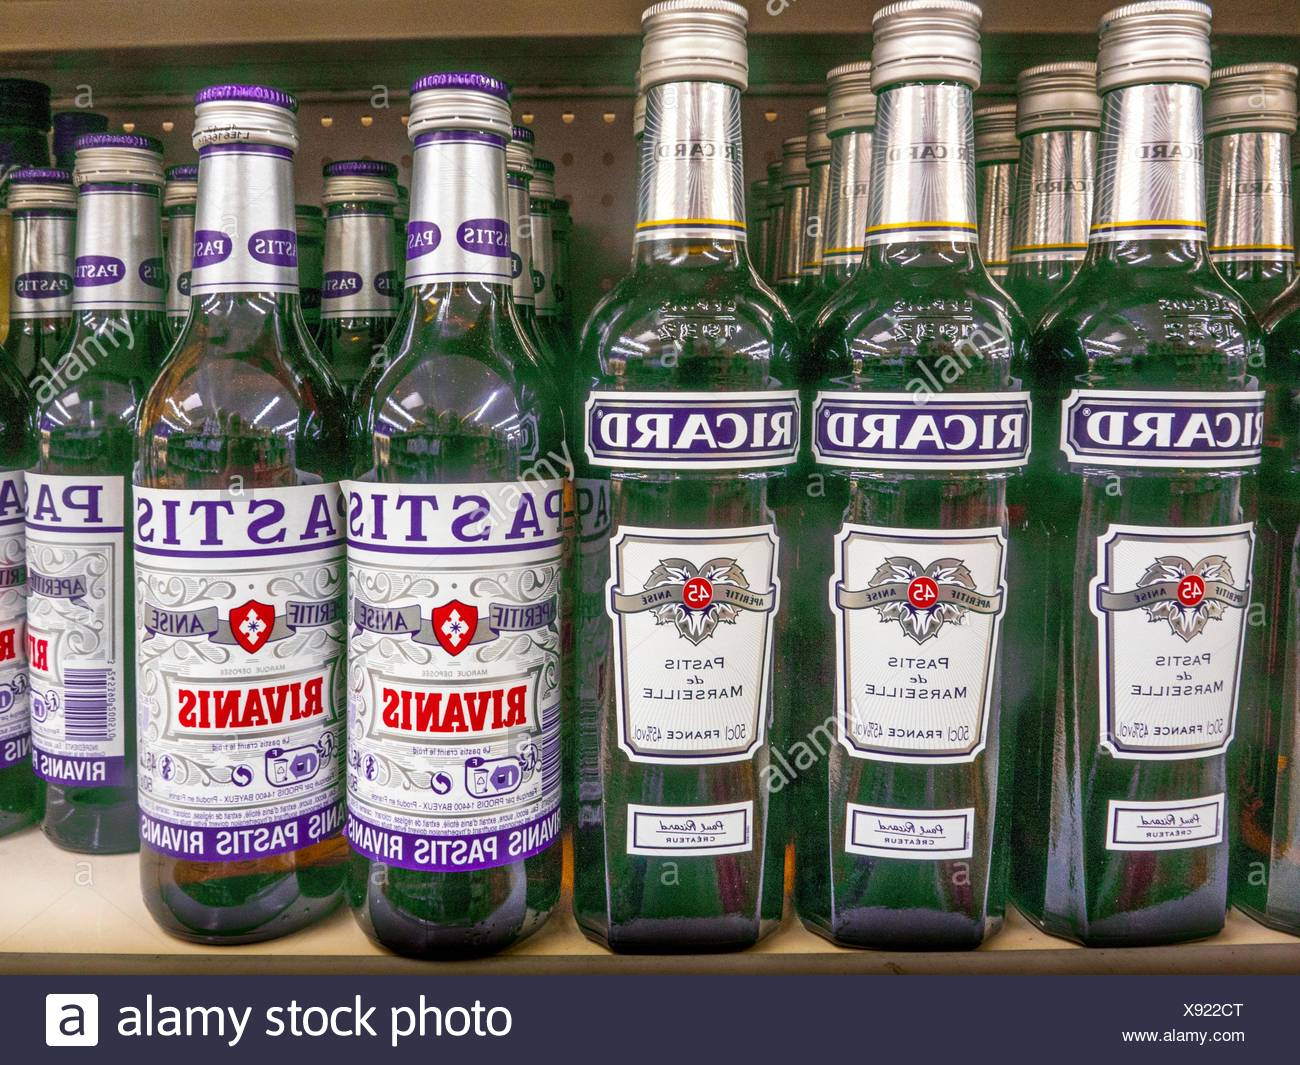 Ricard and Pastis, anise and licorice-flavored spirits, France - Stock Image